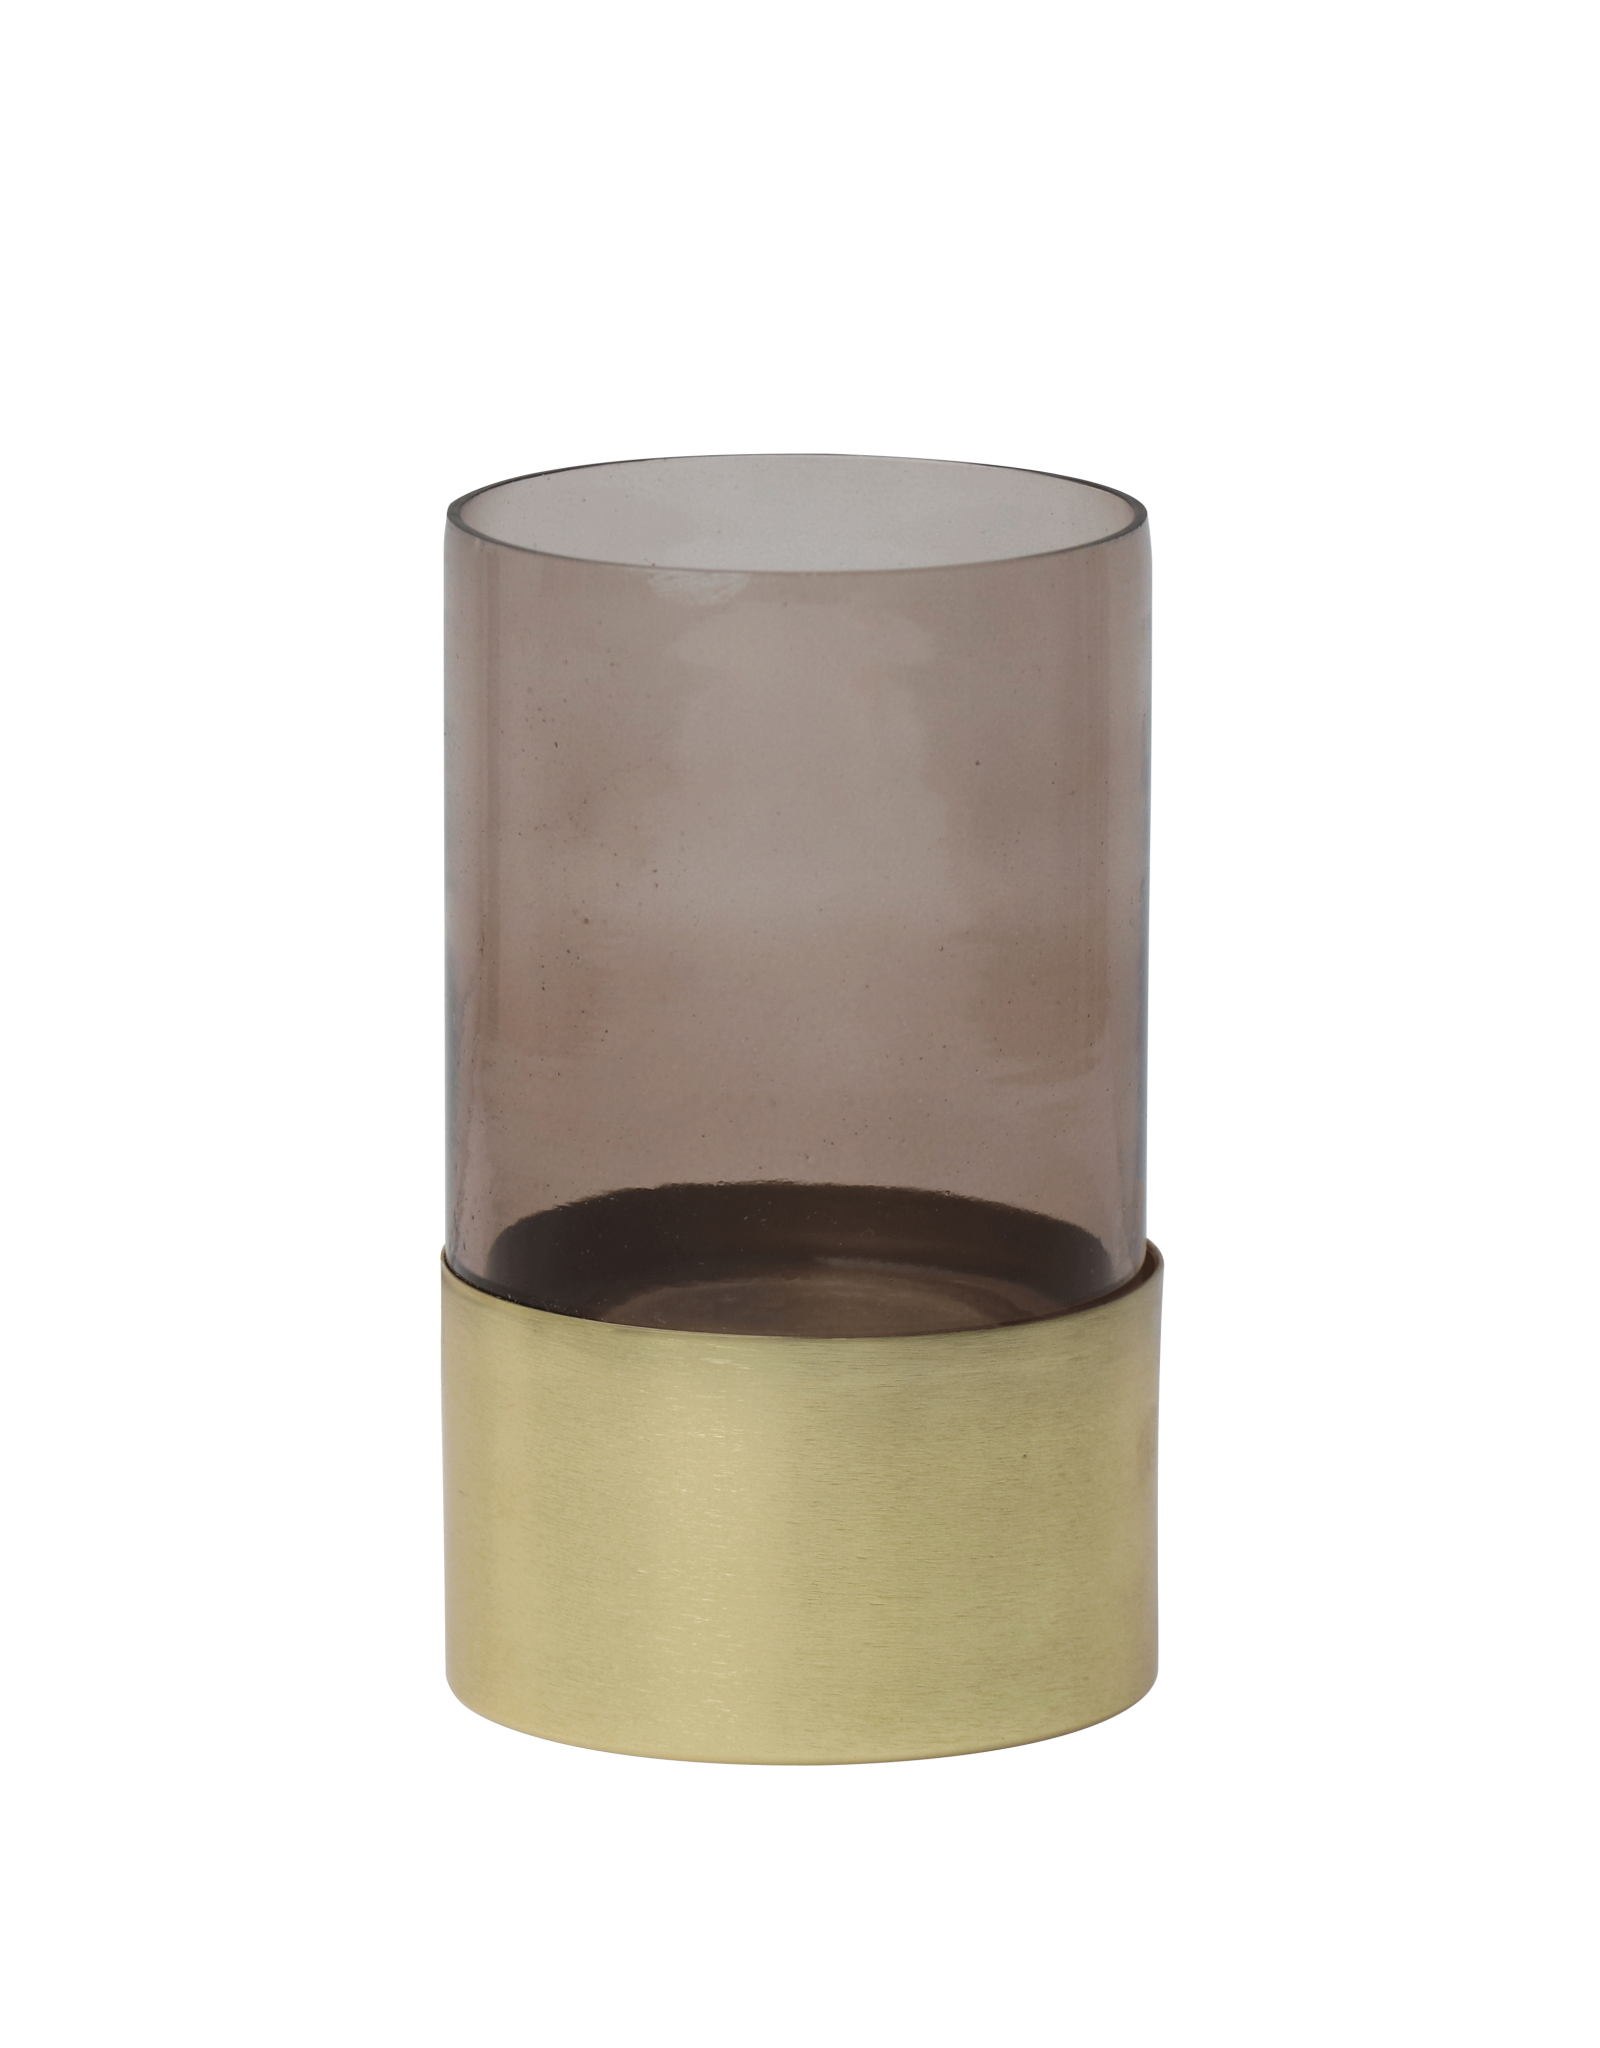 Urban Nature Culture Tealight holder in giftpack, ebony